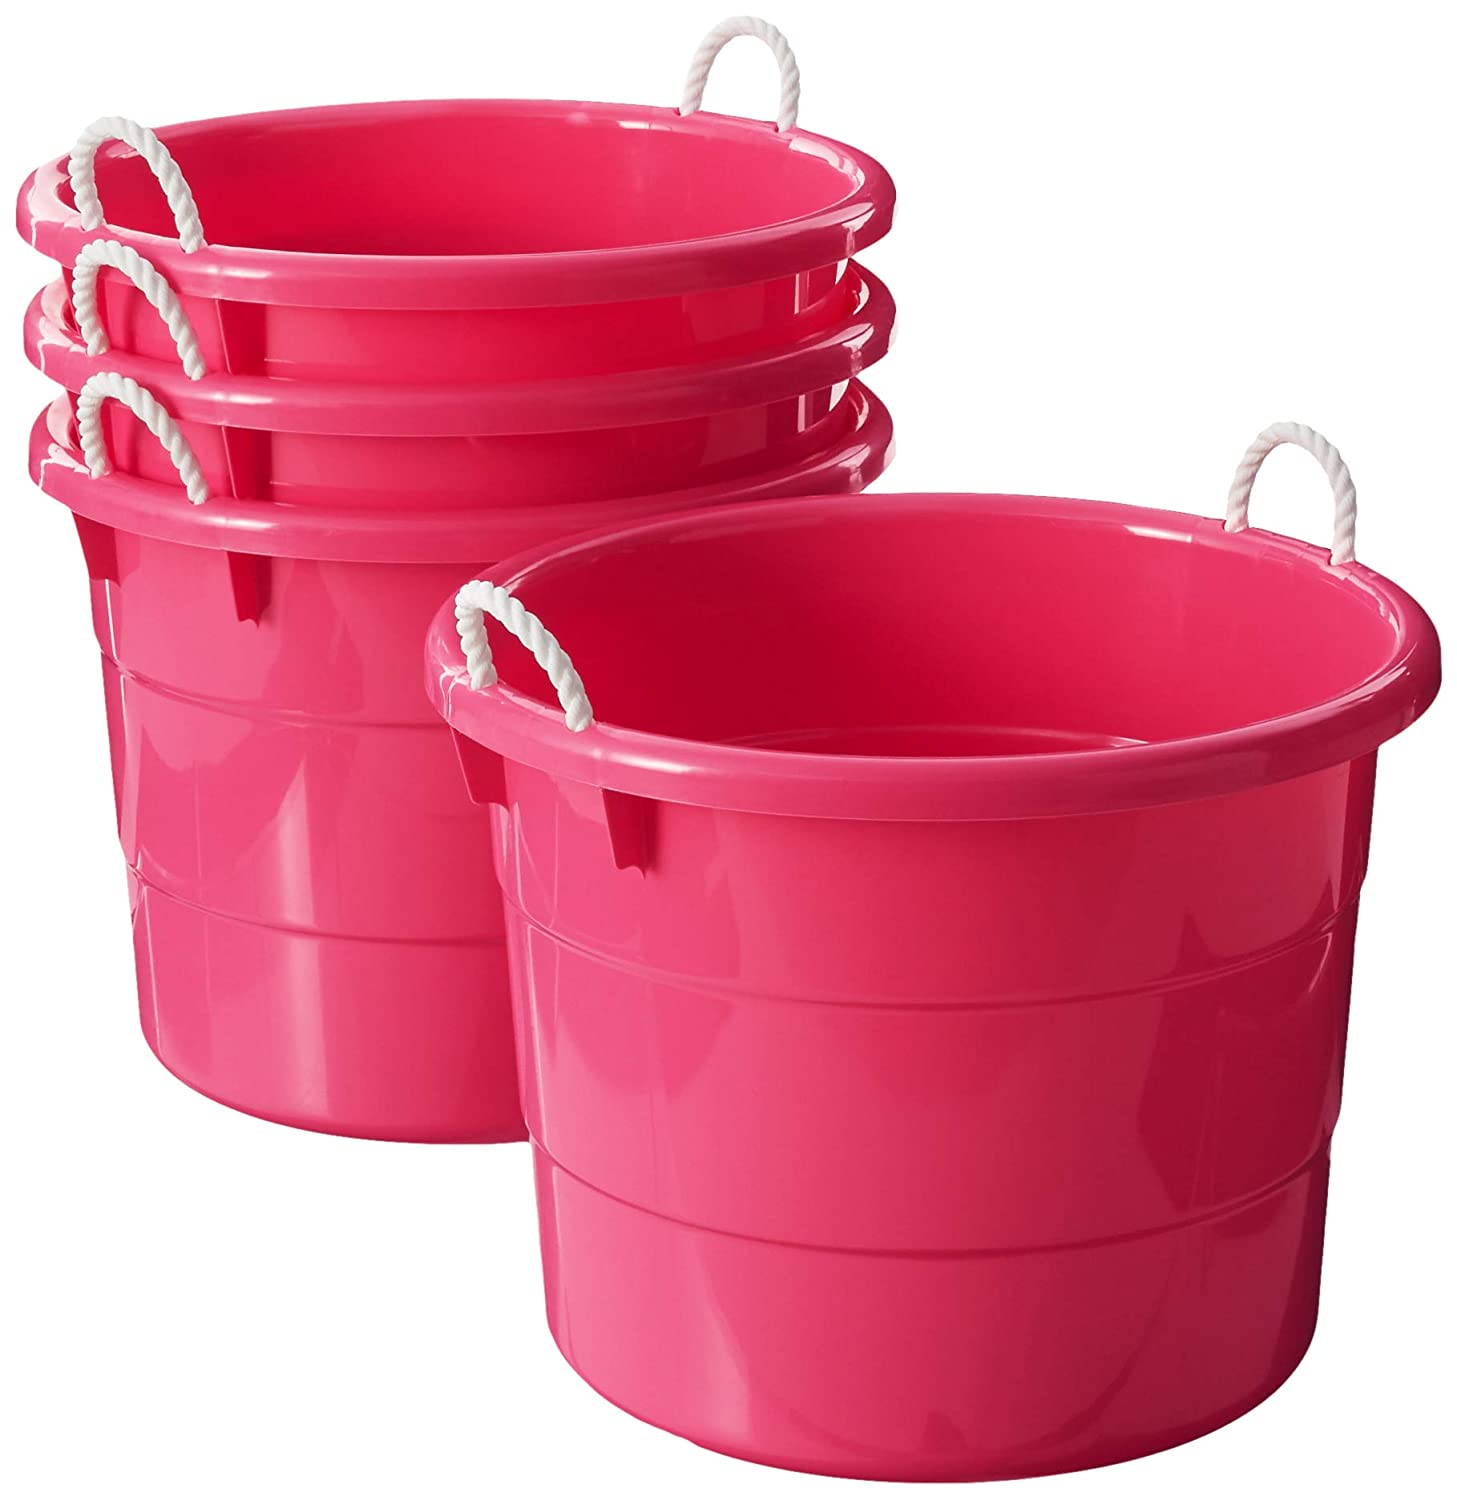 Homz Plastic Utility Tub with Rope Handles, 18 Gallon, Pink, Set of 4